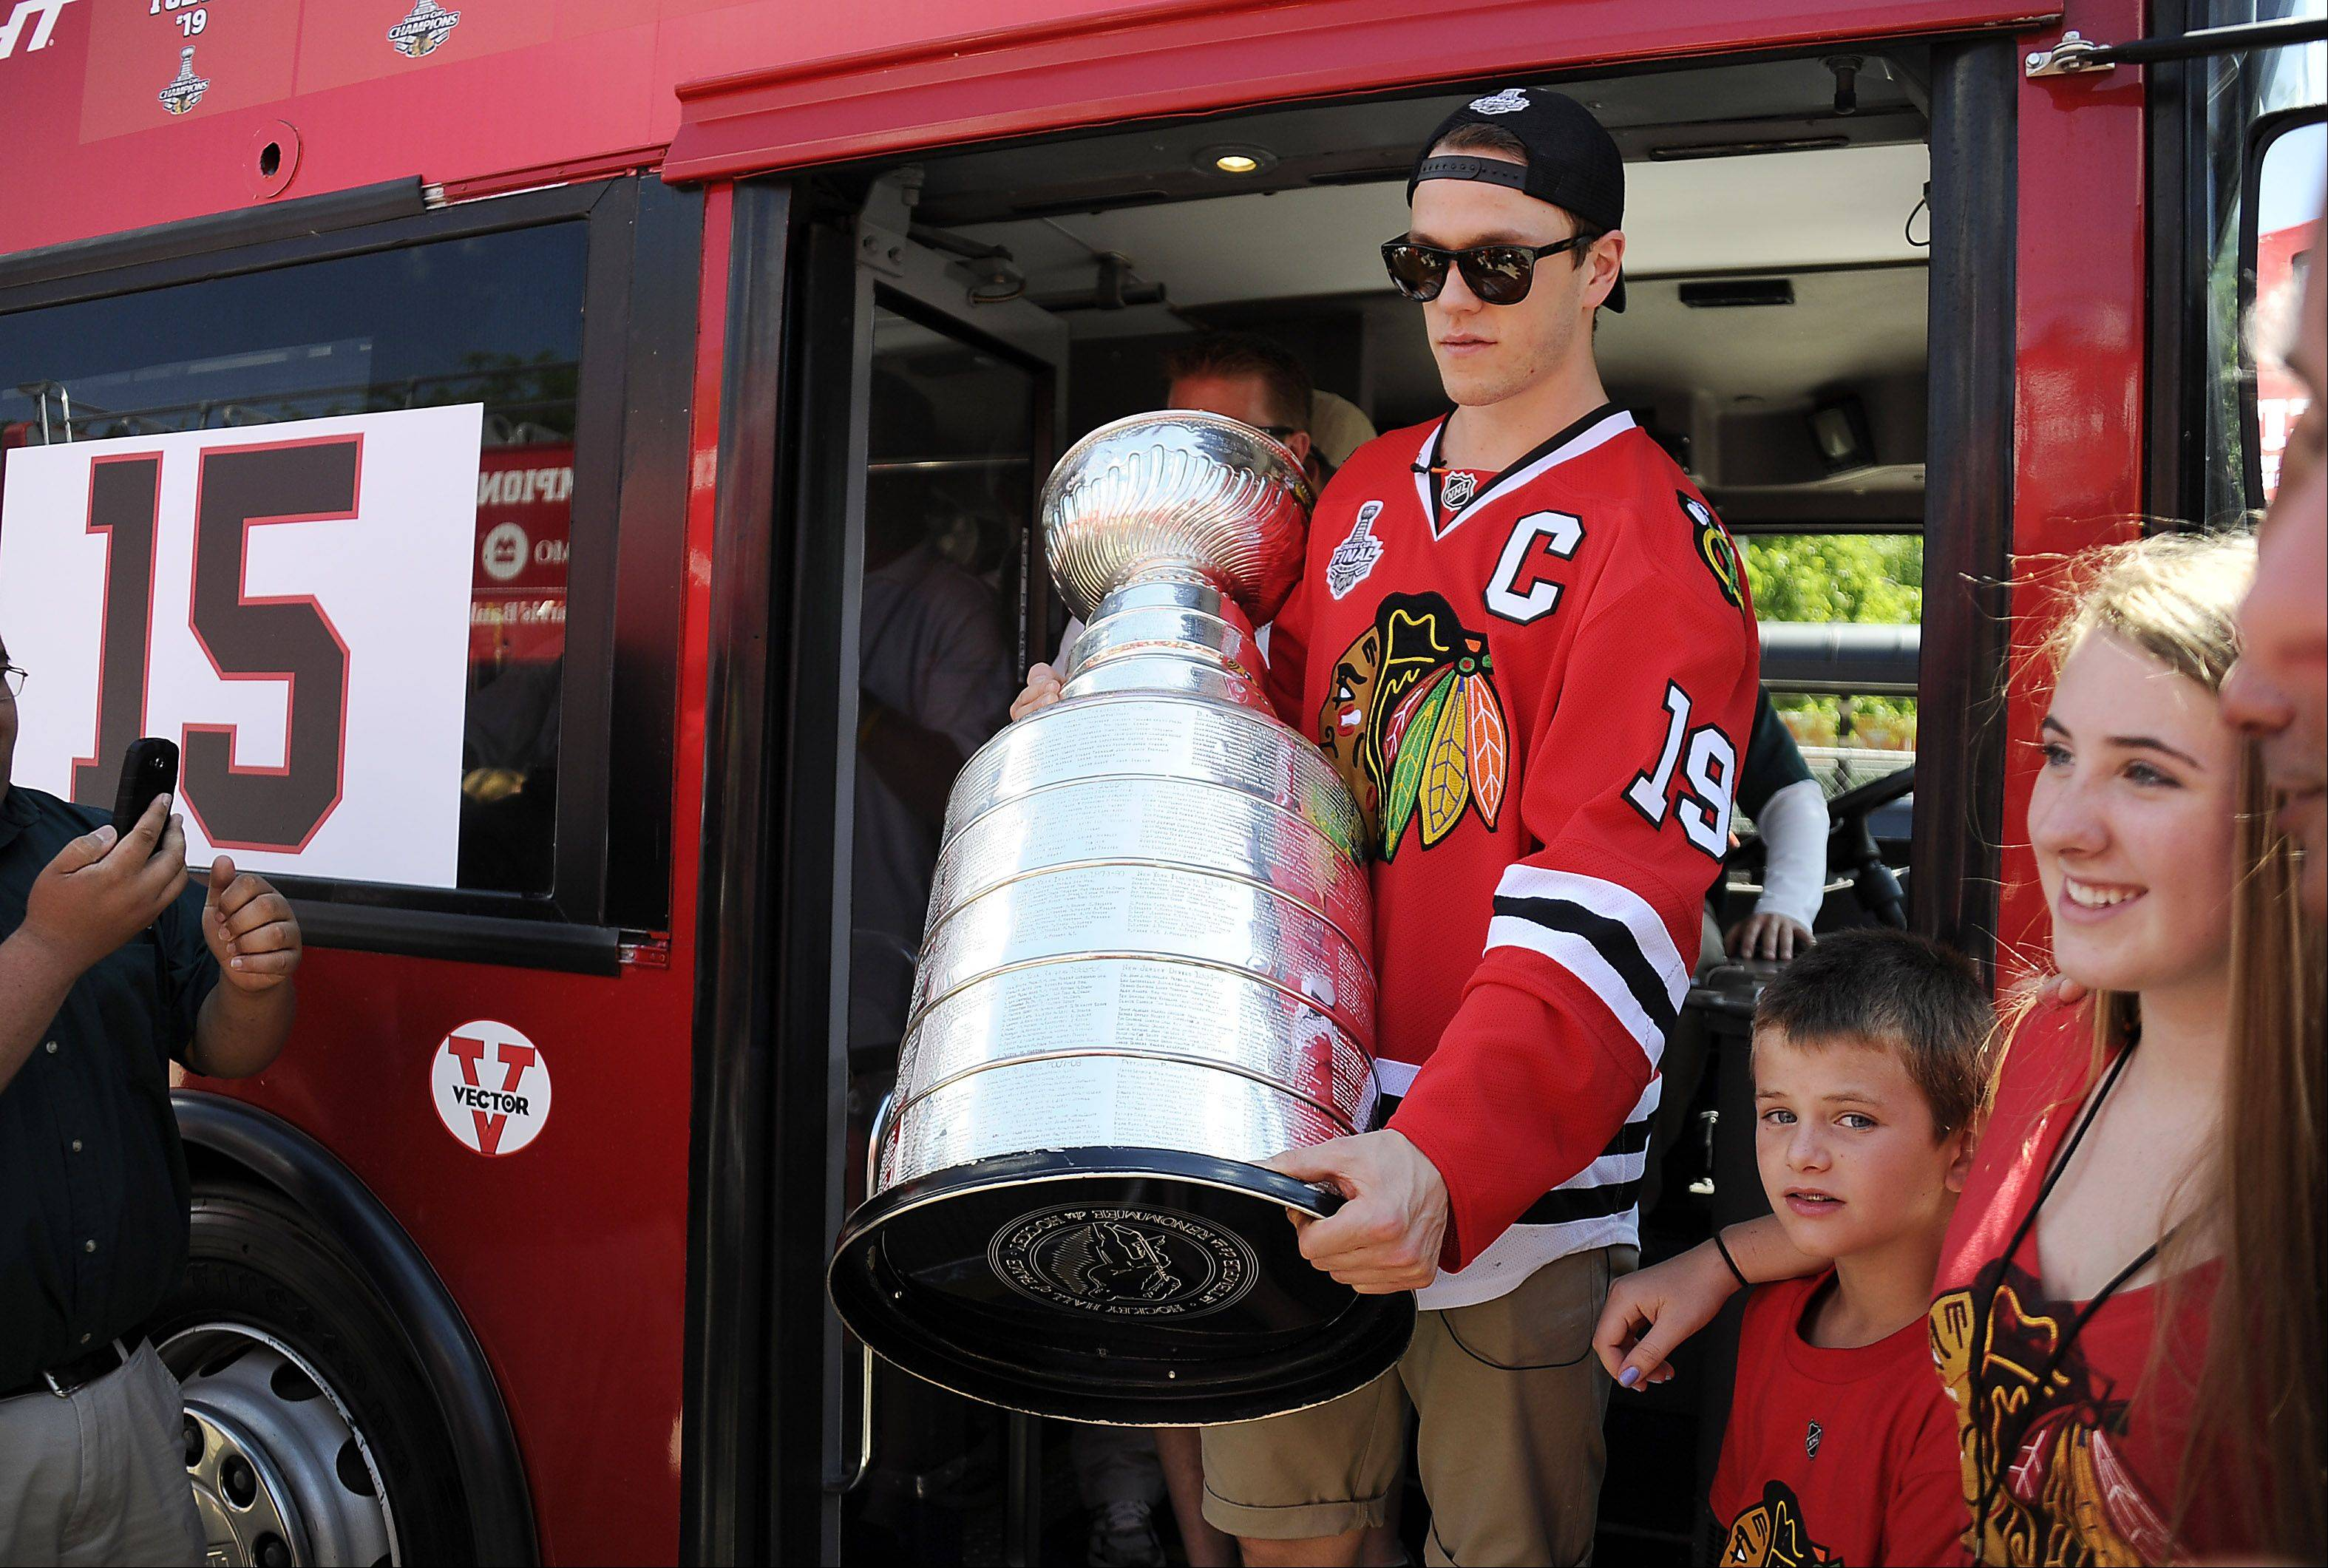 Chicago Blackhawks captain Jonathan Toews carries the Stanley Cup from the players bus as they prepare to show it to Blackhawks fans at Grant Park in Chicago.